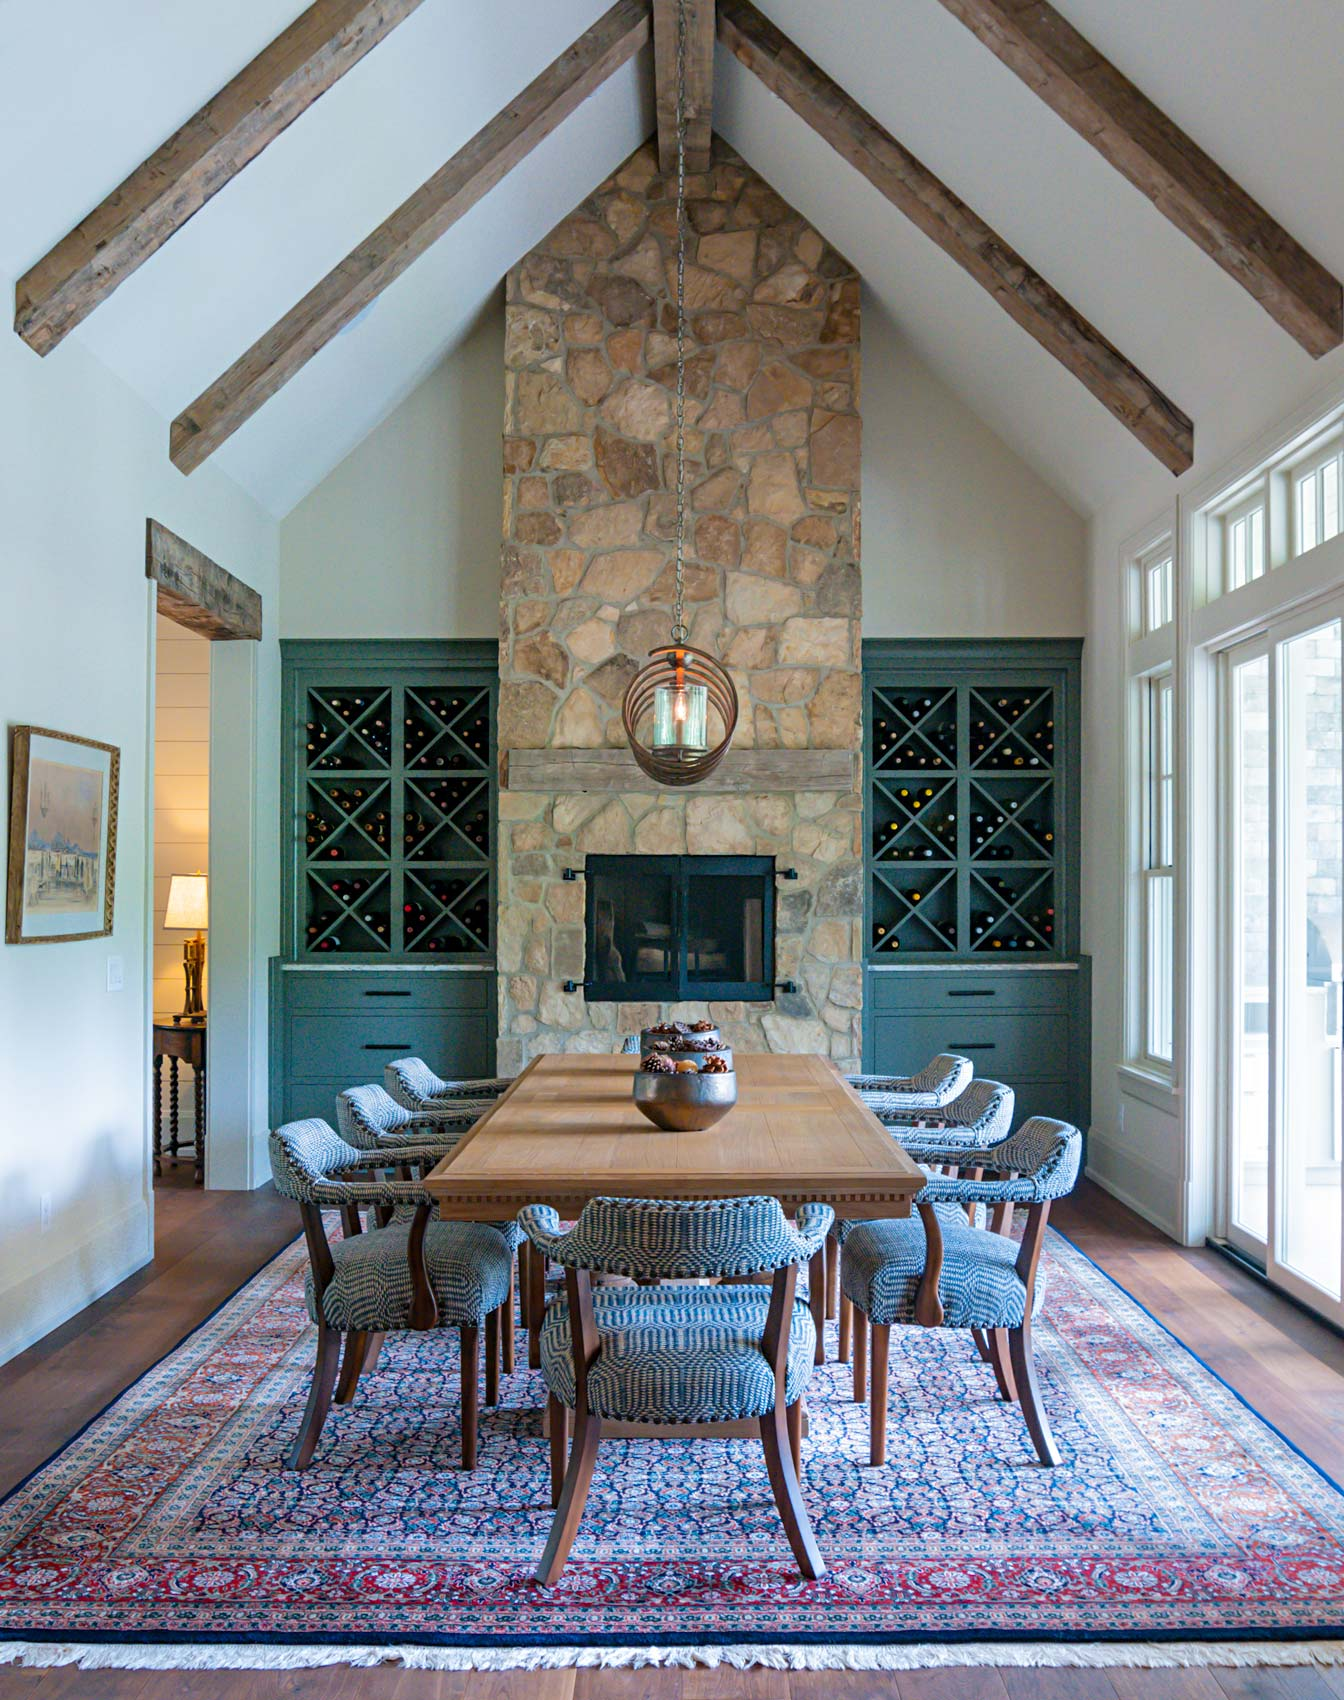 Photograph of a luxury home interior dinning area featuring vaulted ceillings, a stone fireplace mantle bordered by built-in wine racks. A long wooden table in the foreground.